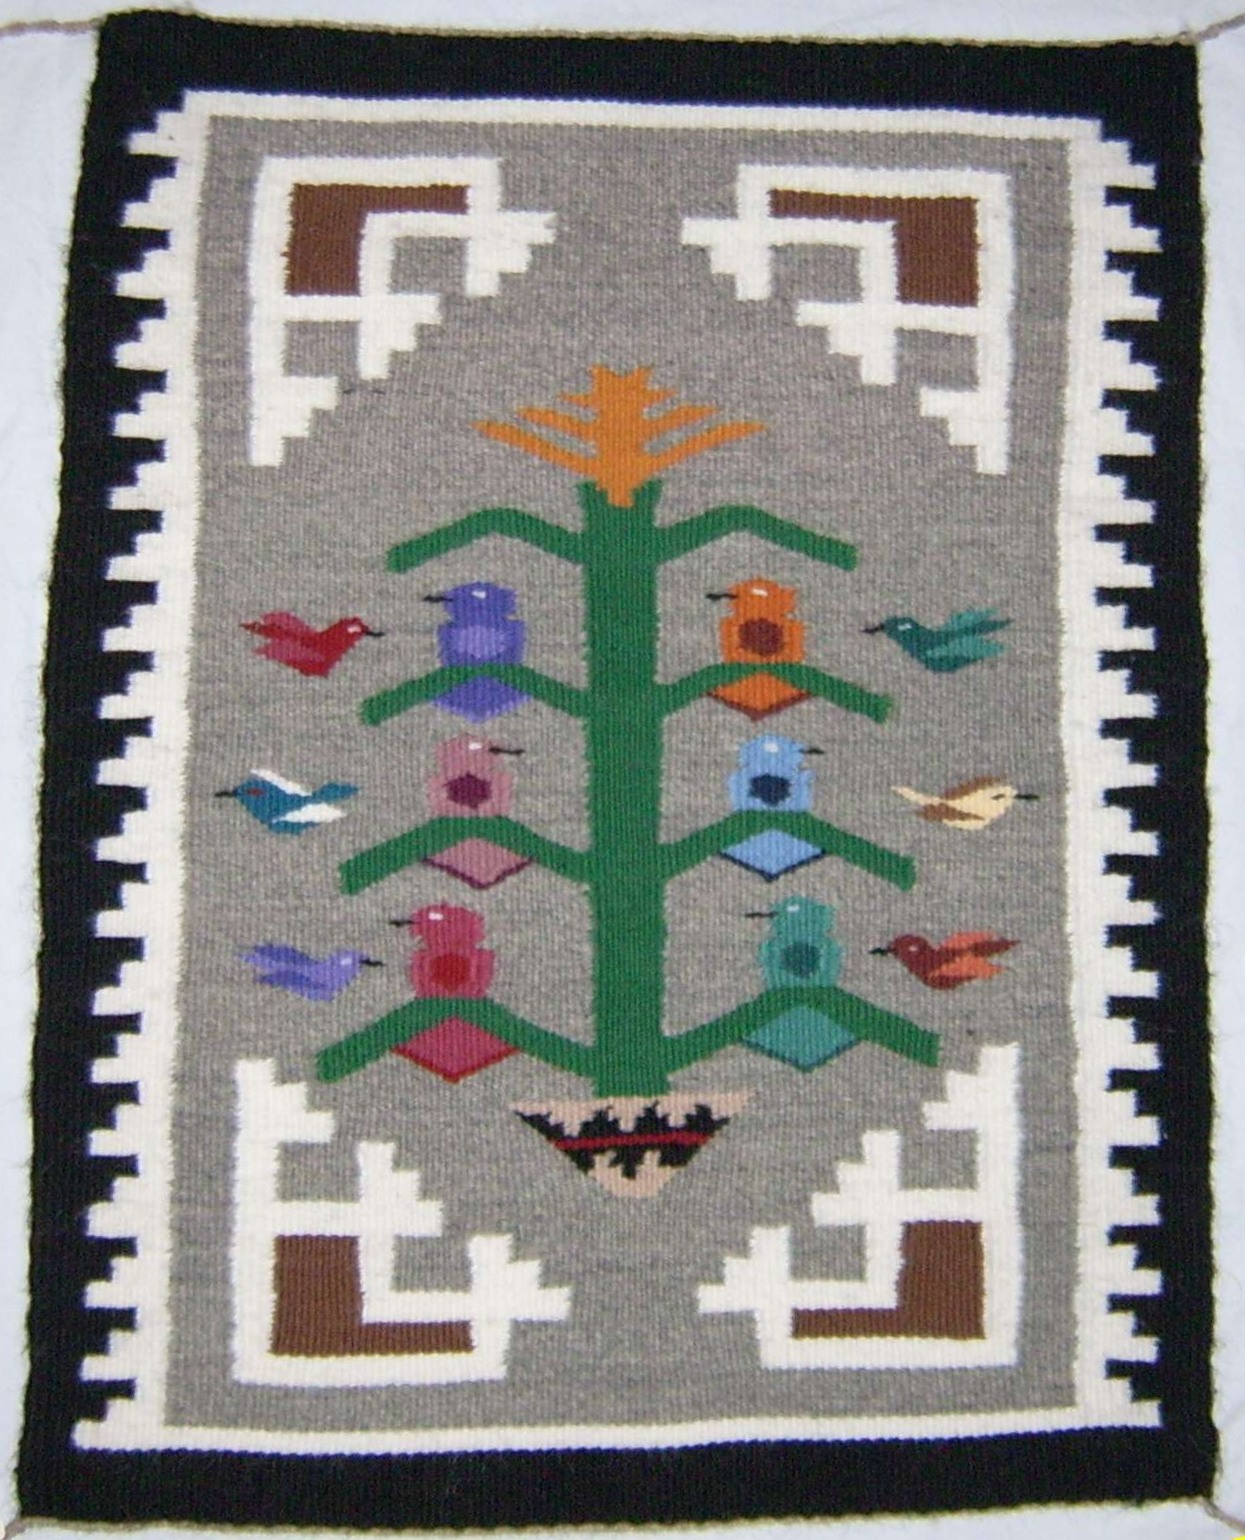 Looking forLooking forauthenticNative AmericanLooking forLooking forauthenticNative Americanrugs? Shop online today and find handcrafted southwestern style areaLooking forLooking forauthenticNative AmericanLooking forLooking forauthenticNative Americanrugs? Shop online today and find handcrafted southwestern style arearugsmade onLooking forLooking forauthenticNative AmericanLooking forLooking forauthenticNative Americanrugs? Shop online today and find handcrafted southwestern style areaLooking forLooking forauthenticNative AmericanLooking forLooking forauthenticNative Americanrugs? Shop online today and find handcrafted southwestern style arearugsmade onNavajoreservations.